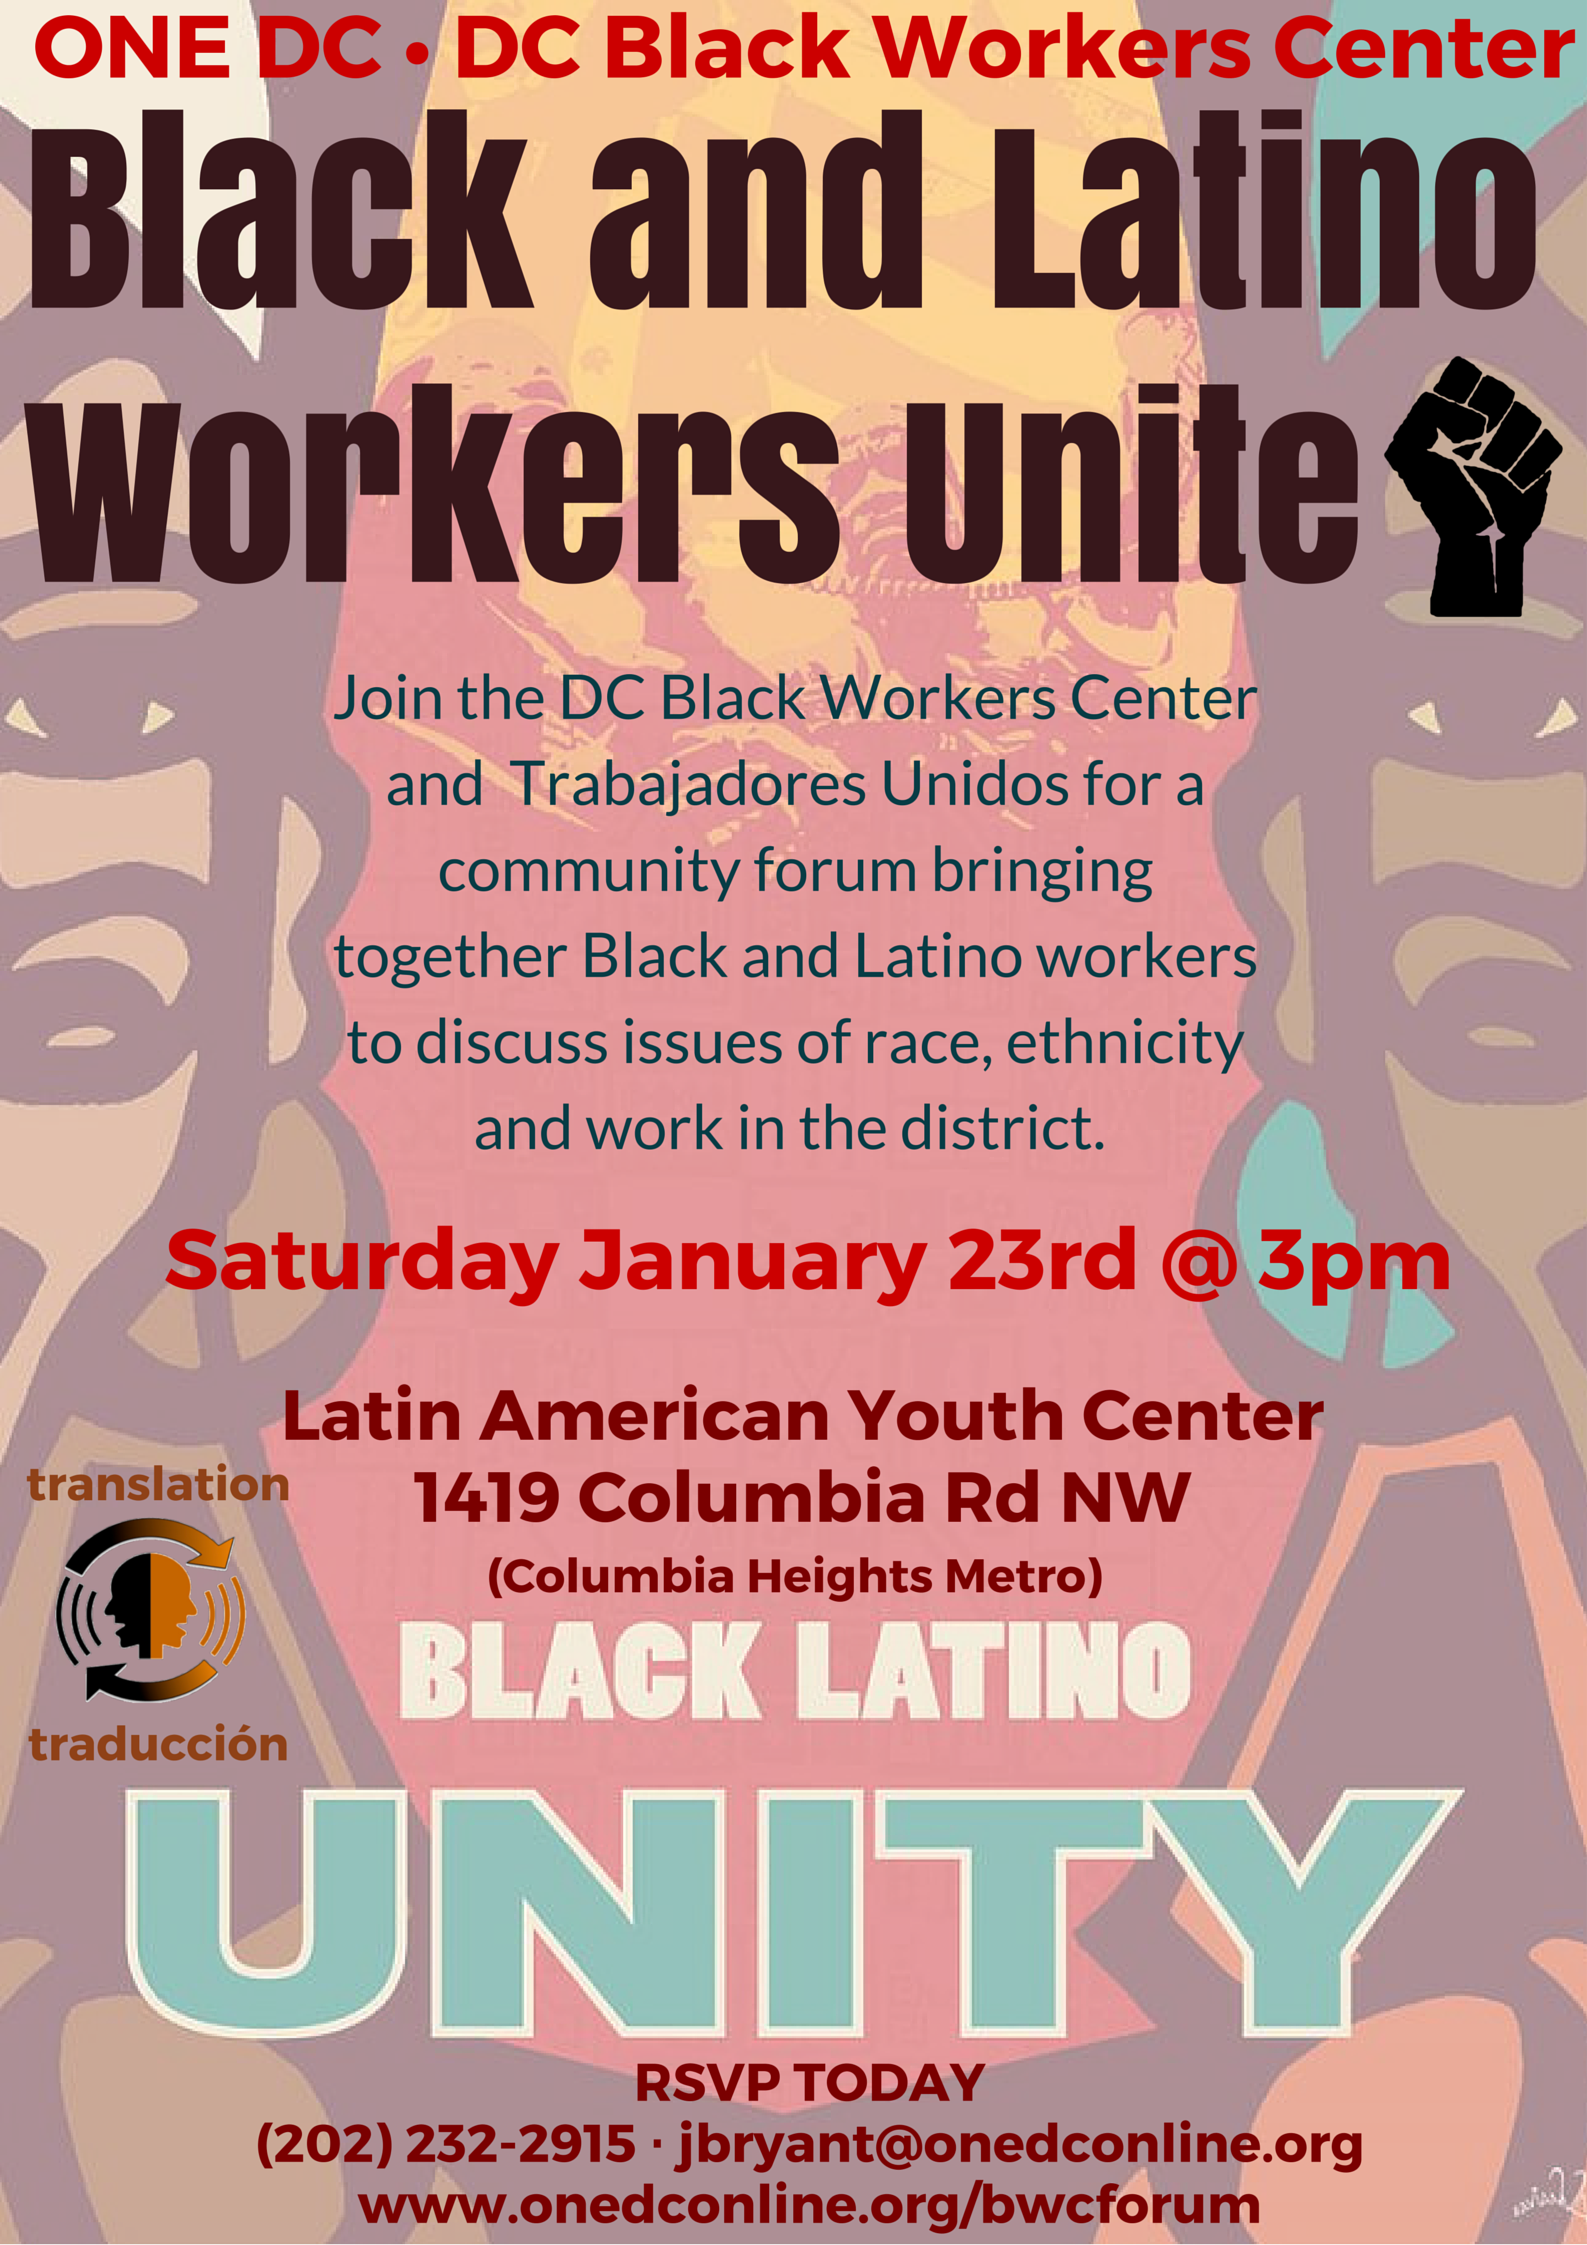 Black_and_Latino_Workers_Unite!_updated.png